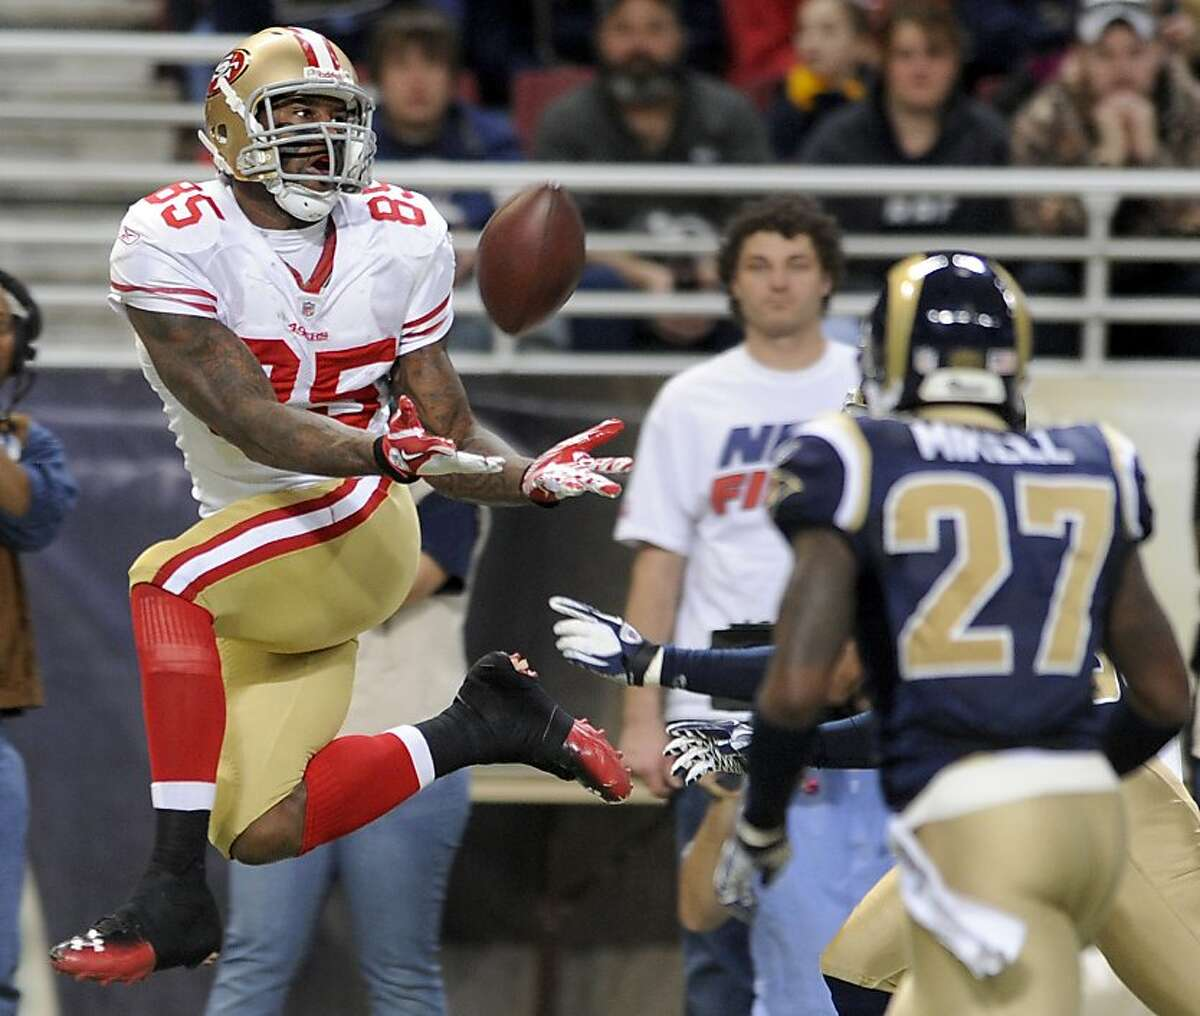 San Francisco 49ers tight end Vernon Davis, left, catches a 44-yard pass as St. Louis Rams safety Quintin Mikell (27) defends during the second quarter of an NFL football game Sunday, Jan. 1, 2012, in St. Louis. (AP Photo/L.G. Patterson)